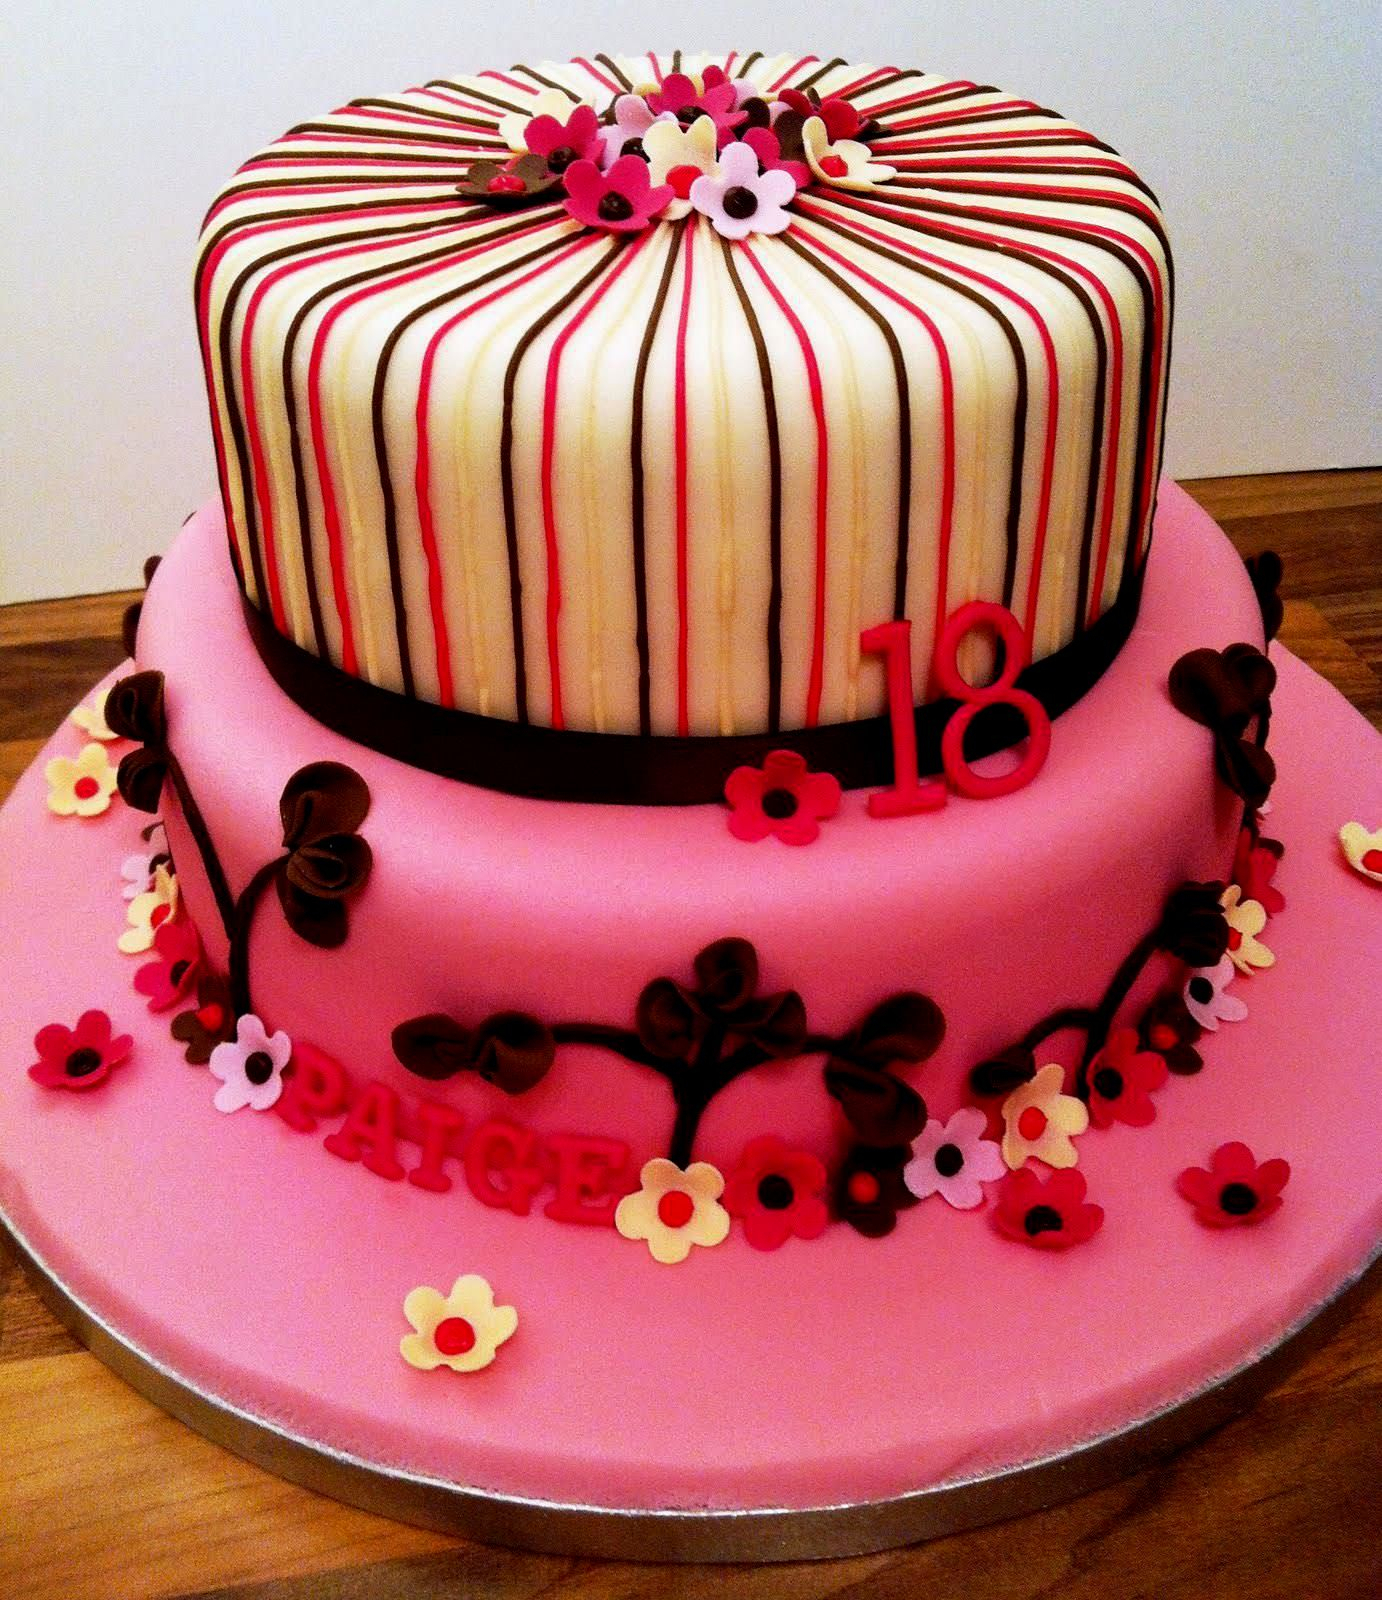 18Th Birthday Cake Designs Simple Birthday Cake Design For Girls 18th Birthday Cake Decoration